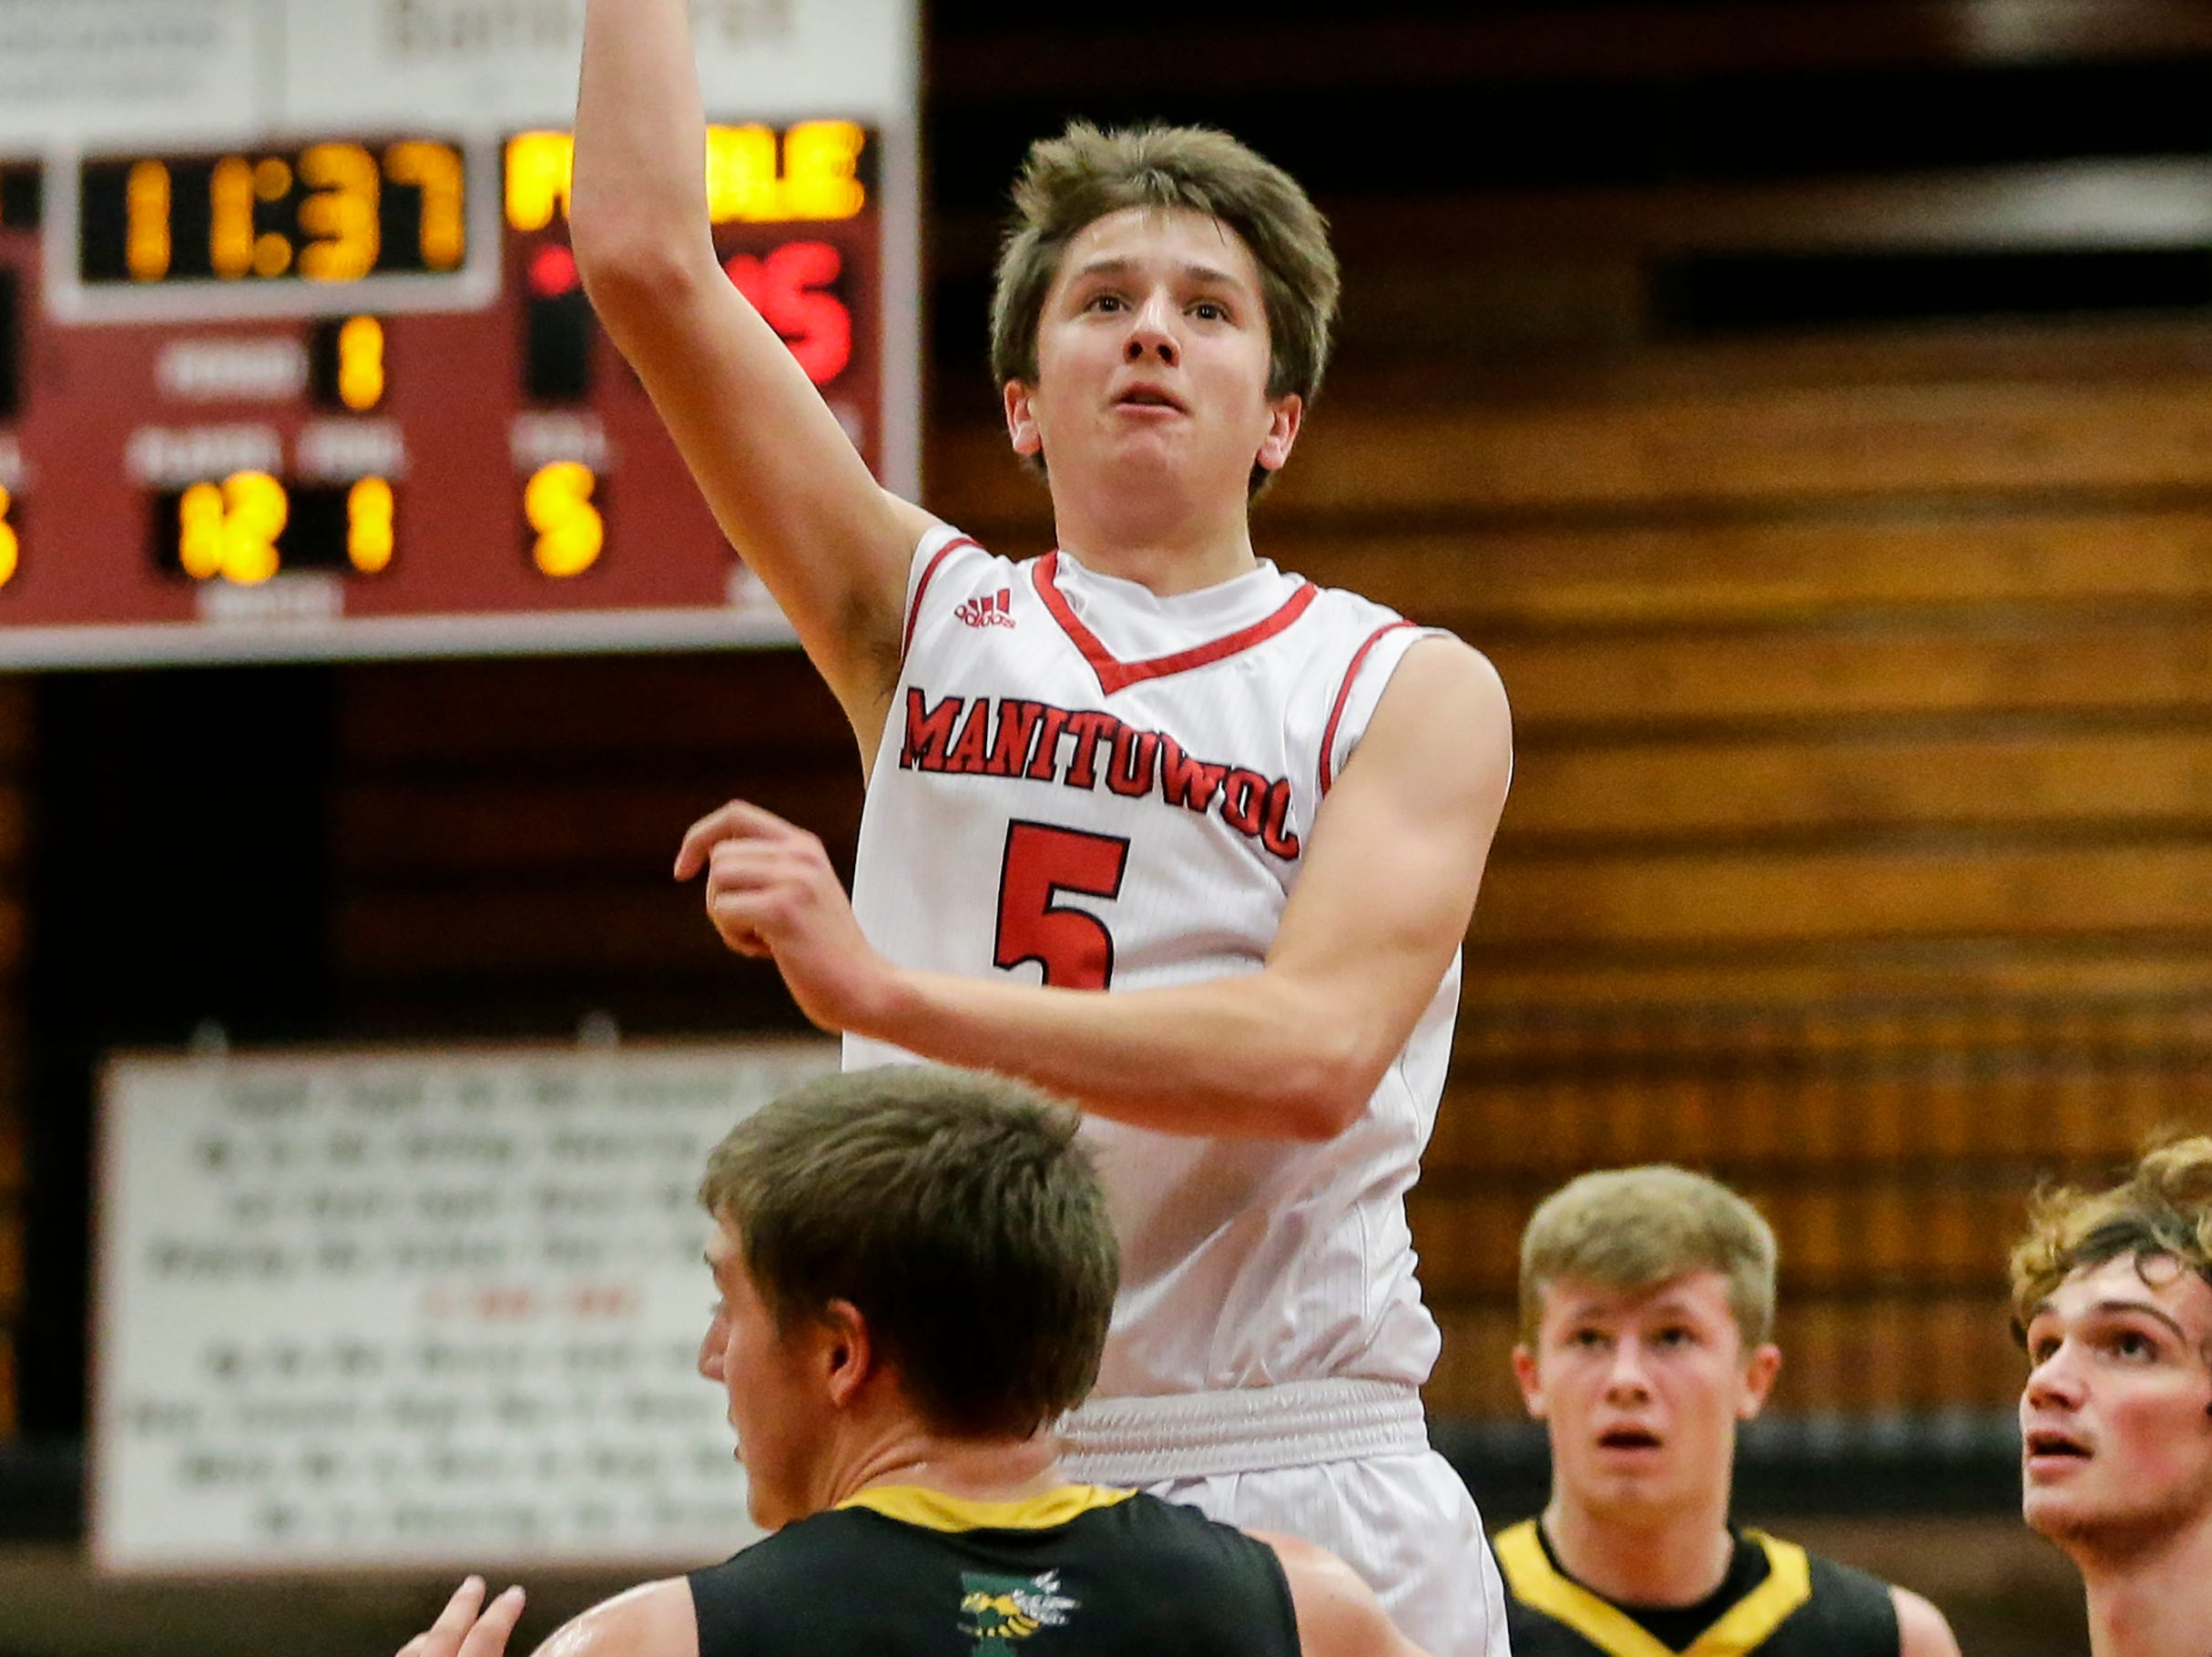 Manitowoc Lincoln's Josh Hoffman puts up a jump shot against Green Bay Preble during boys FRCC basketball at Manitowoc Lincoln High School Friday, December 21, 2018, in Manitowoc, Wis. Joshua Clark/USA TODAY NETWORK-Wisconsin